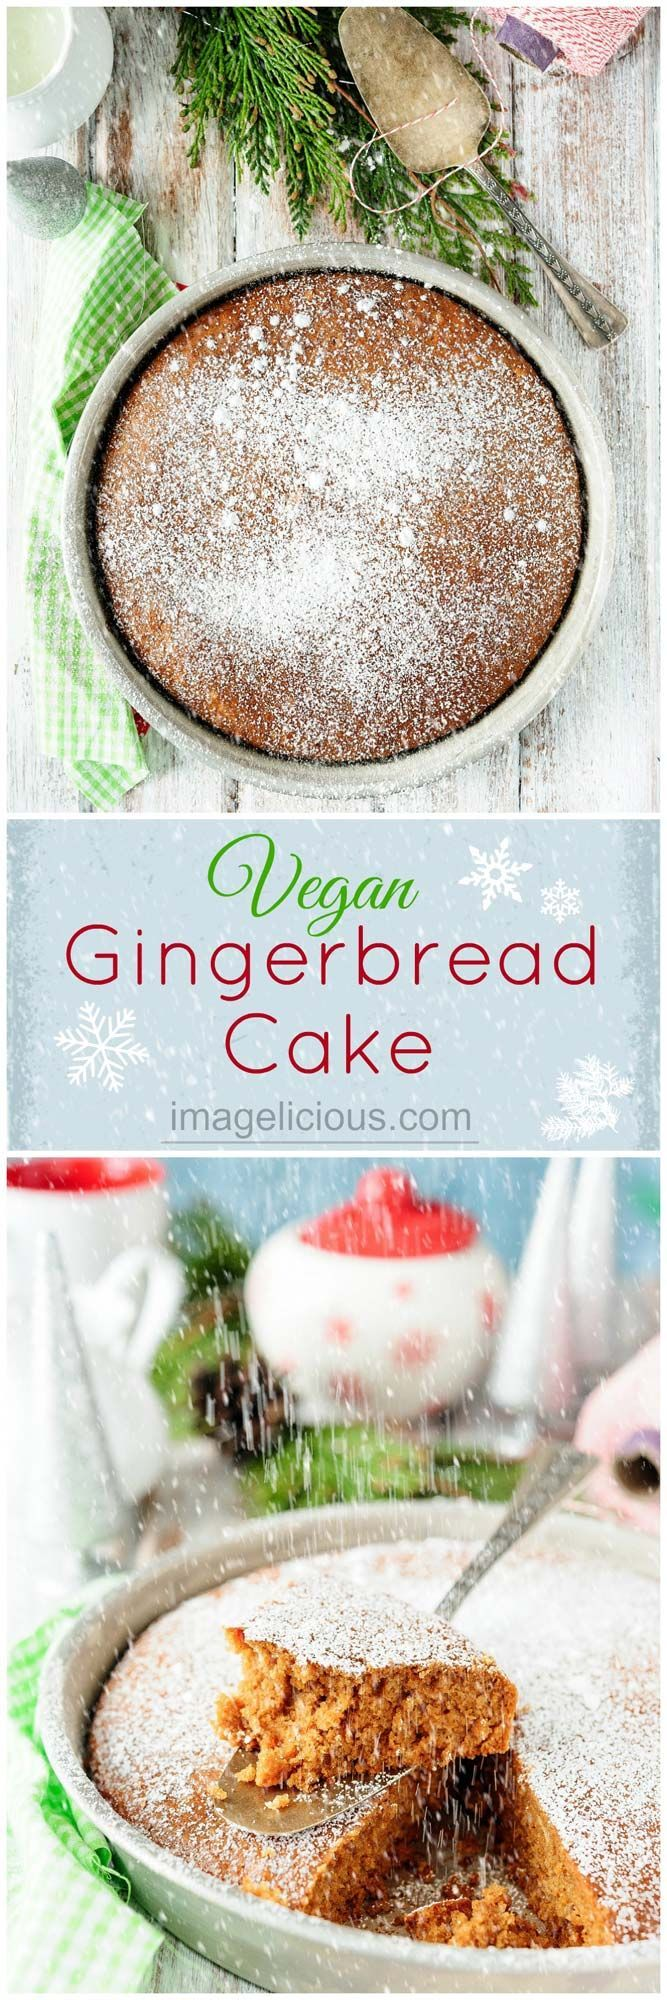 This Vegan Gingerbread Cake is perfect for breakfast with a mug of coffee or an afternoon snack with a cup of tea. It's deliciously spicy and soft and light. Easy one-bowl dessert that can be made even during the busiest holiday season   Imagelicious